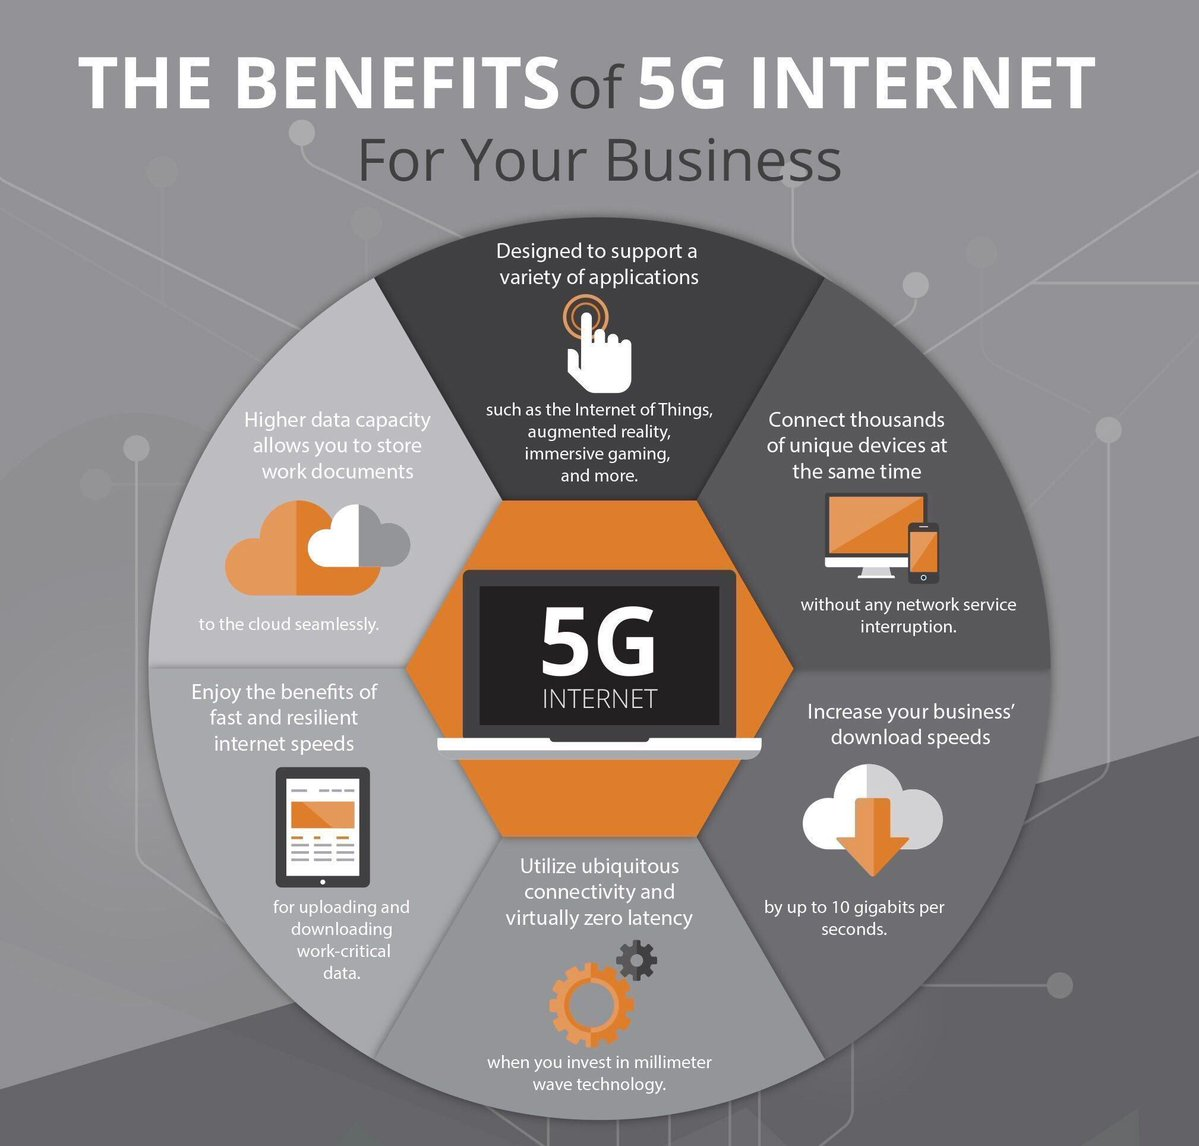 What are the #business benefits of #5G?   #CyberSecurity #infosec #mobile #Wearables #SmartCity #BigData #IoT #IIoT #smartgrids #DigitalMarketing #GrowthHacking #Hacks #Google #googledrive #Cloud #contentmarketing #OnlineMarketing #ContentMarketing #Productivity #storage<br>http://pic.twitter.com/QoXoFPfnjF